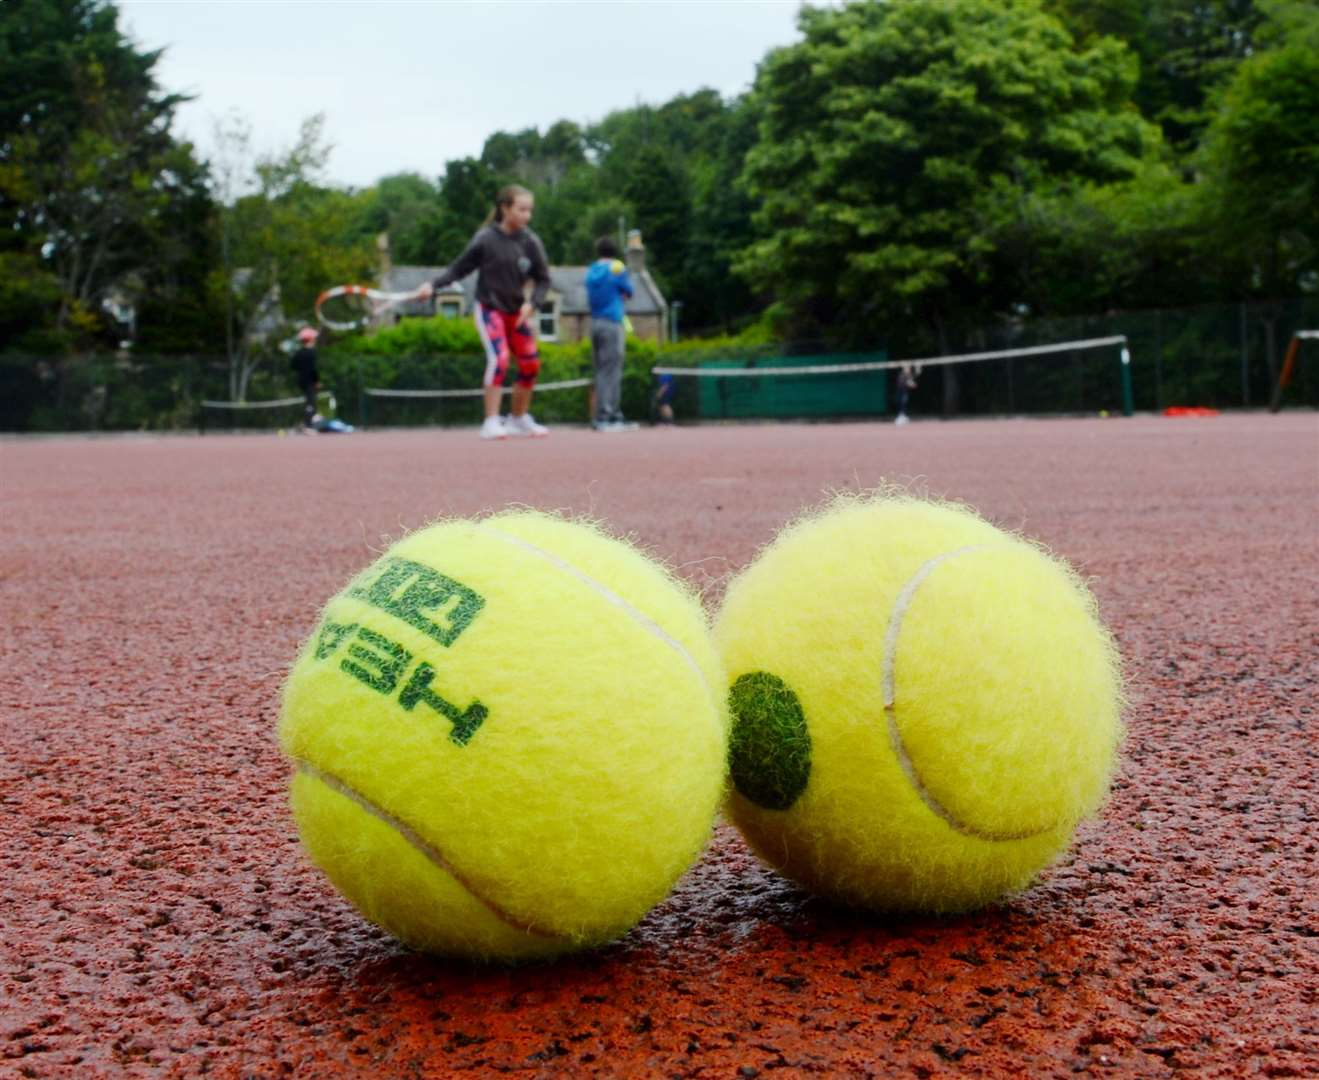 Free tennis lessons are being offered to NHS workers.